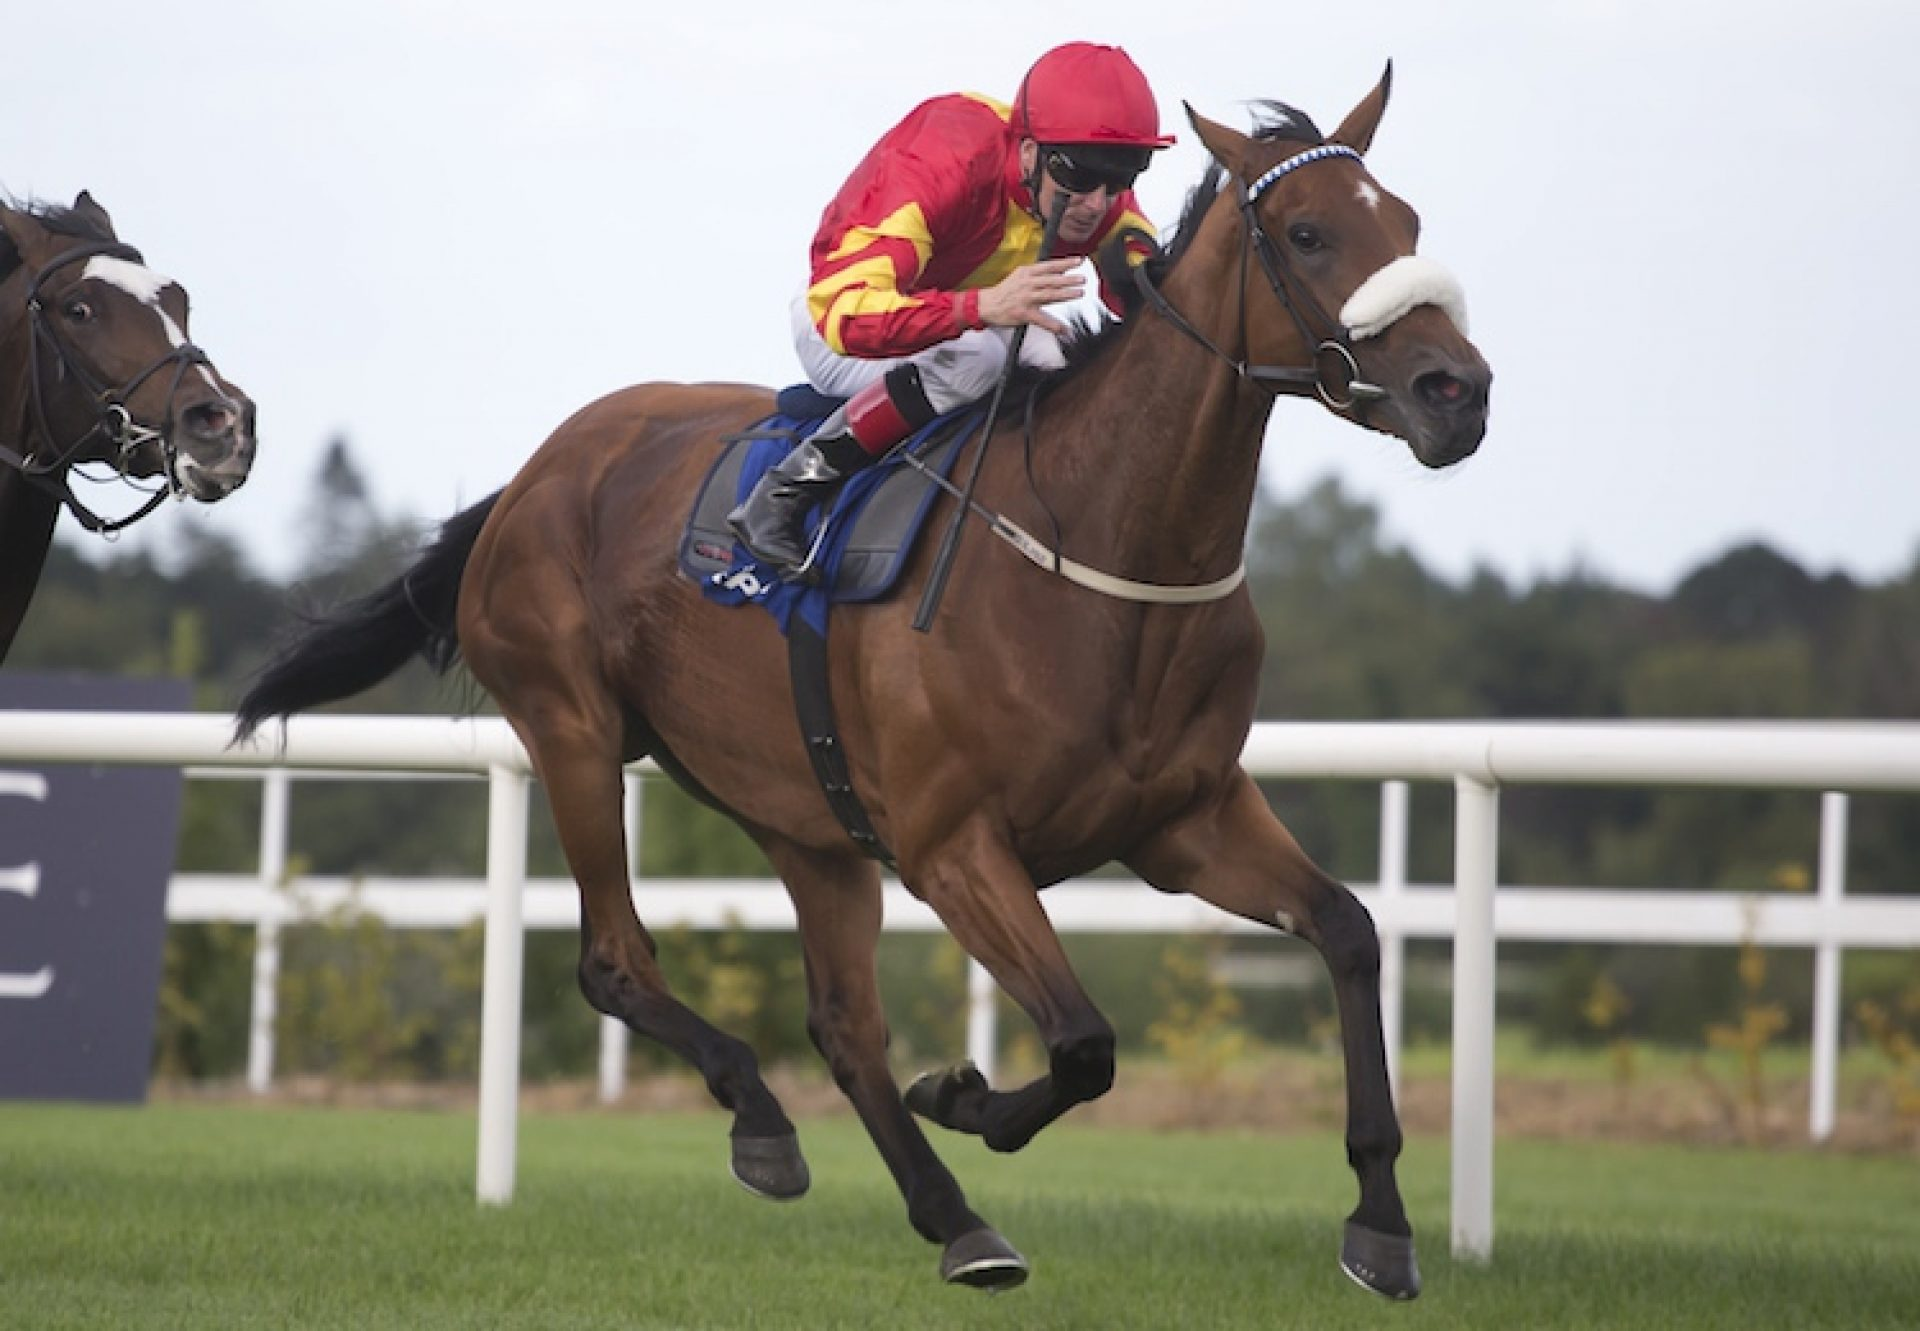 Zhukova (Fastnet Rock) winning the G3 Enterprise Stakes at Leopardstown